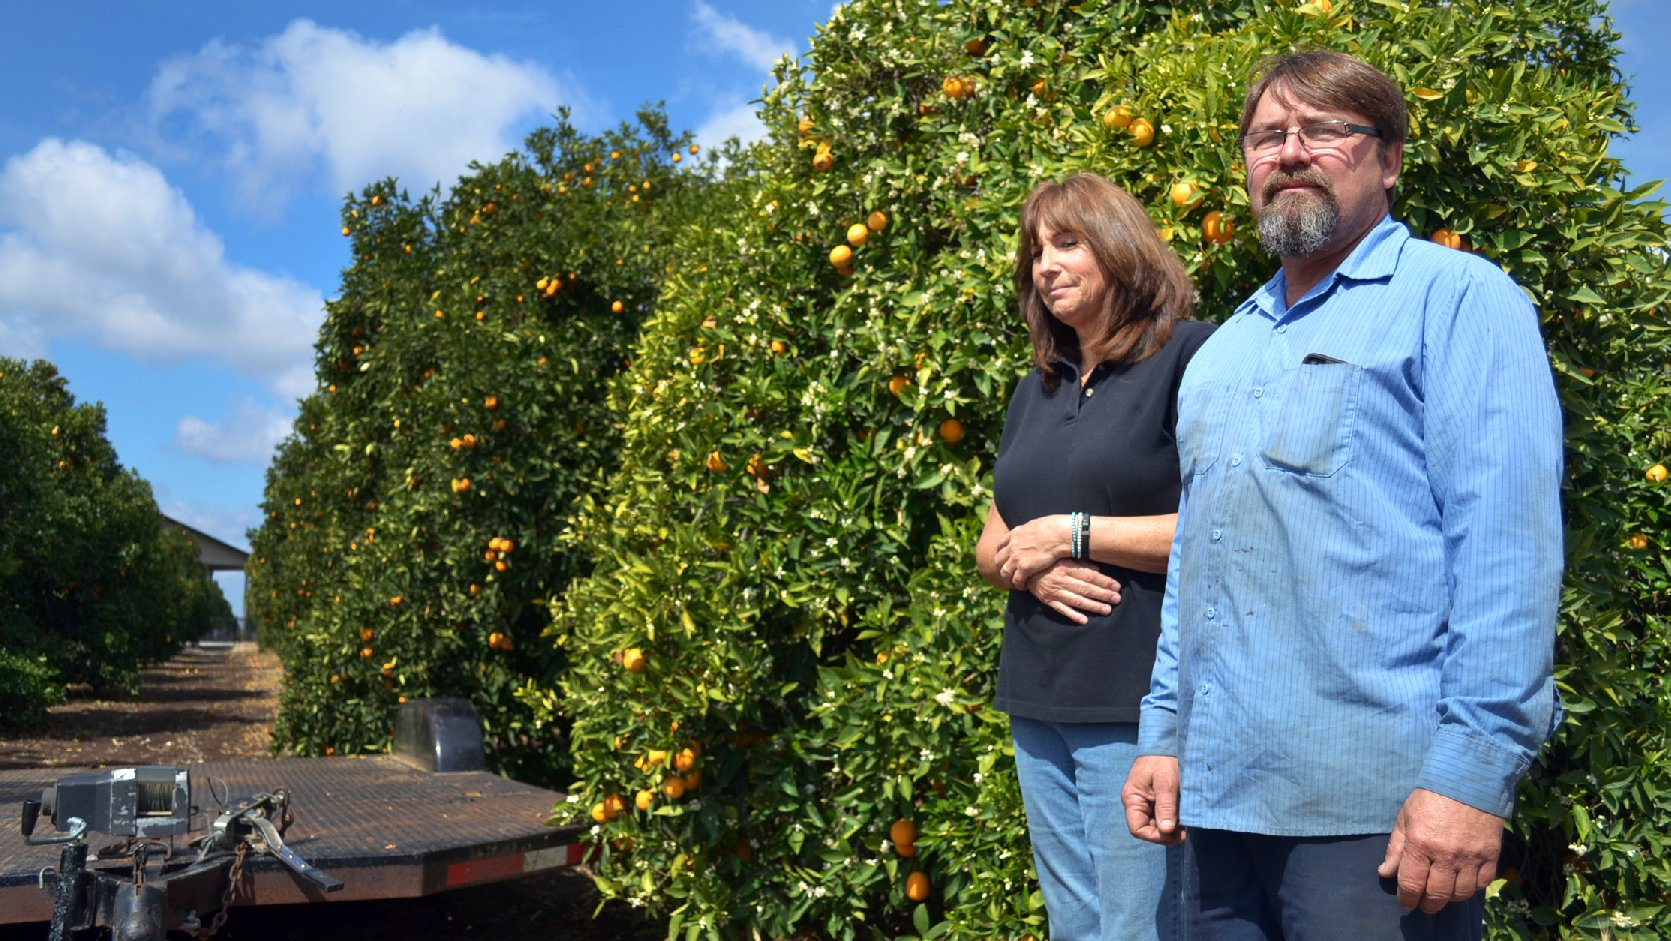 Recent rains kept Suzanne and Mike Collins' orange grove alive, but the rainy season is ending. If they don't get federal irrigation water by this summer, their trees will start dying. Photo: Kirk Siegler/NPR